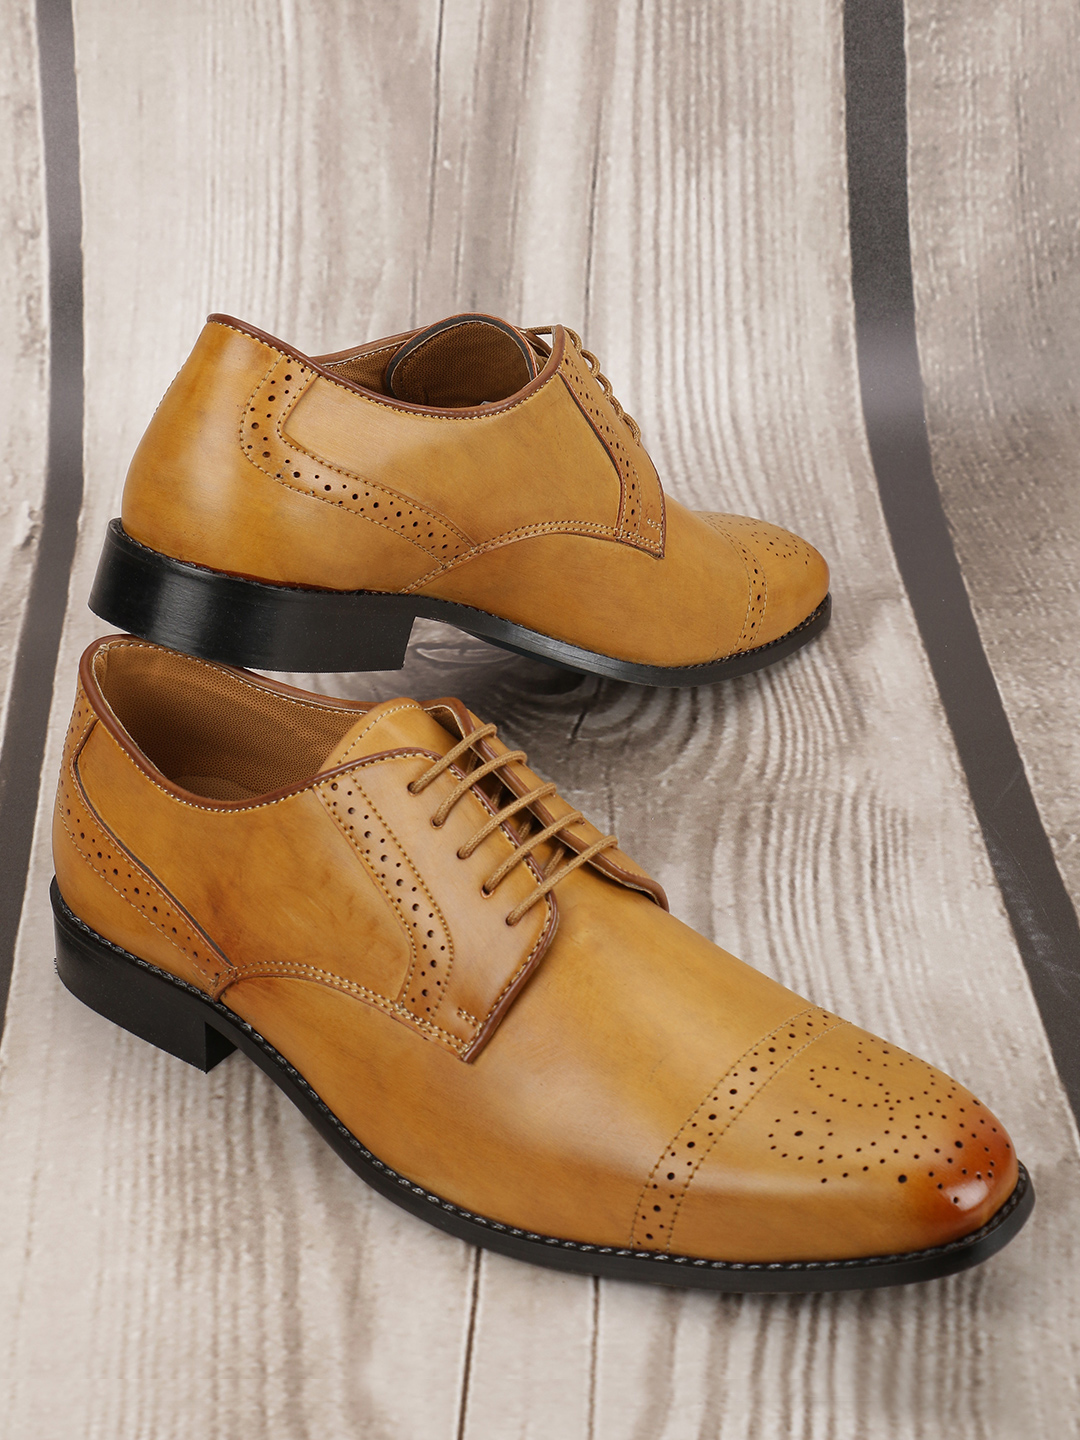 Bolt Of The Good Stuff Brown Brogue Punches Derby Formal Shoes 1